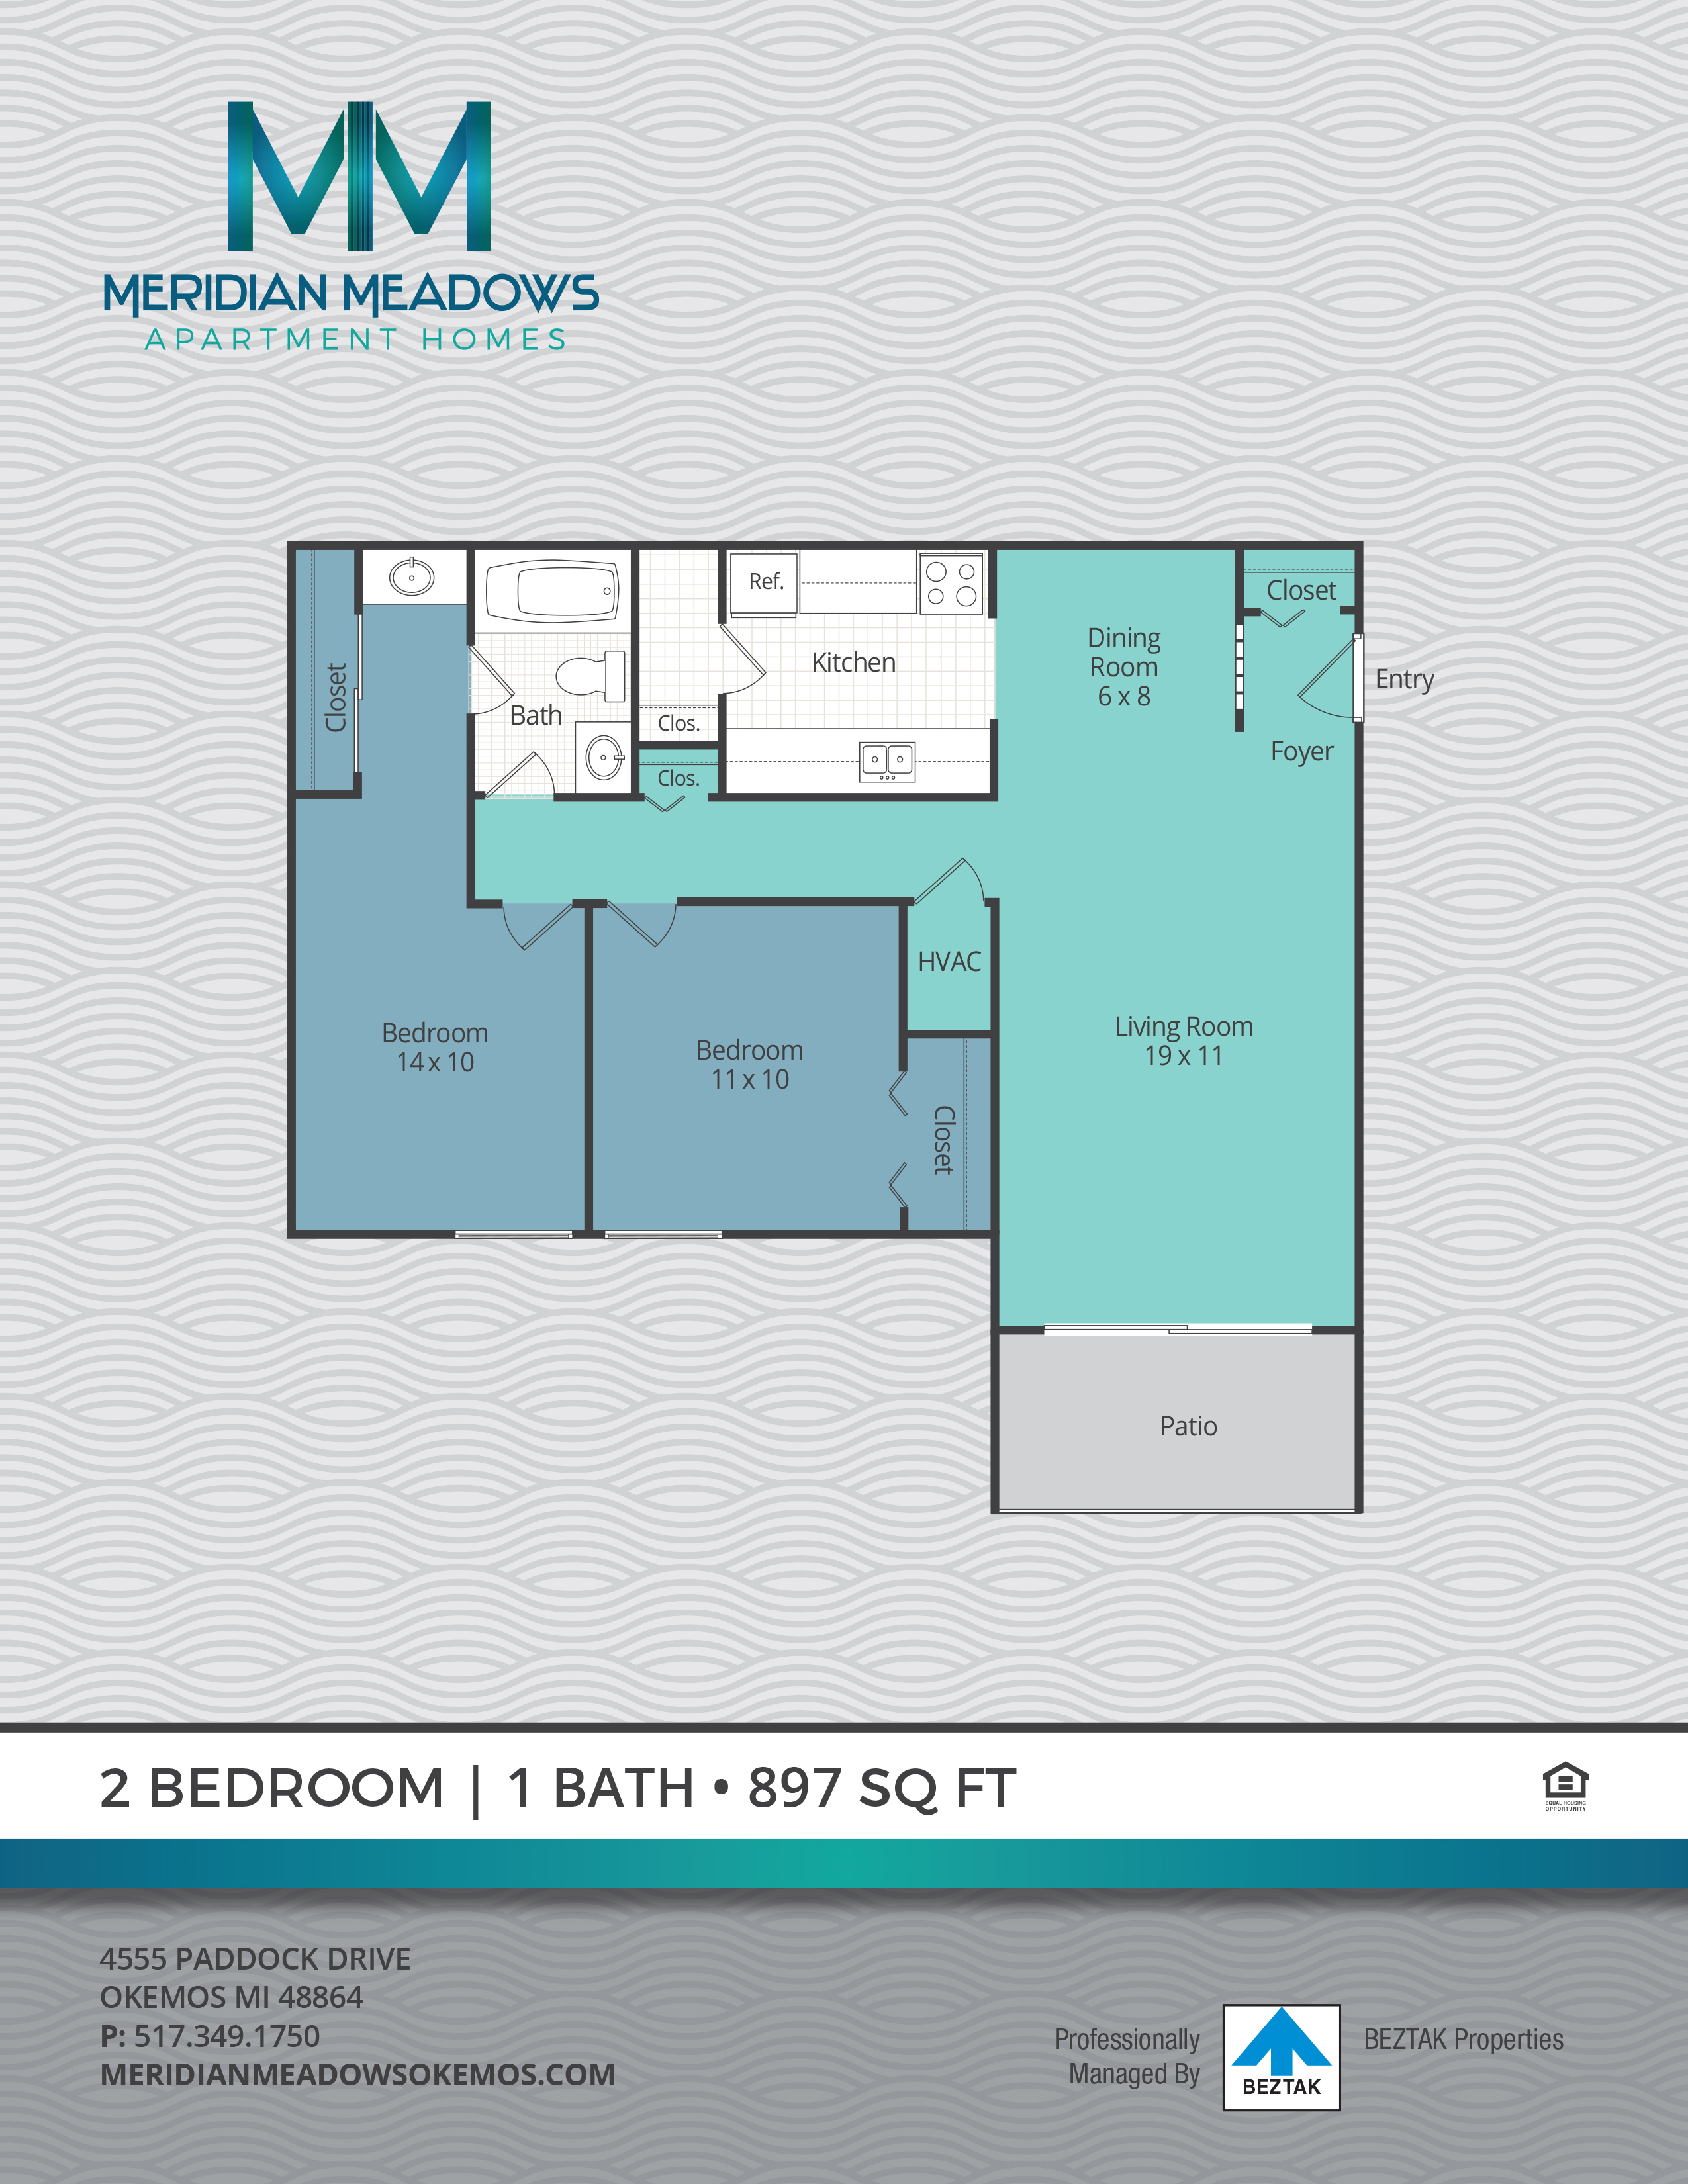 3 Bedroom Townhomes and 1 & 2 Bedroom Apartments in Okemos ... on townhouse floor plan layouts, townhouse double floor plans, five-story townhouse floor plans, townhouse floor plan with office, small 2 bedroom apartment plans, quadplex apartment floor plans, 4 bedroom open floor plans, small house plans, 4-plex apartment plans,